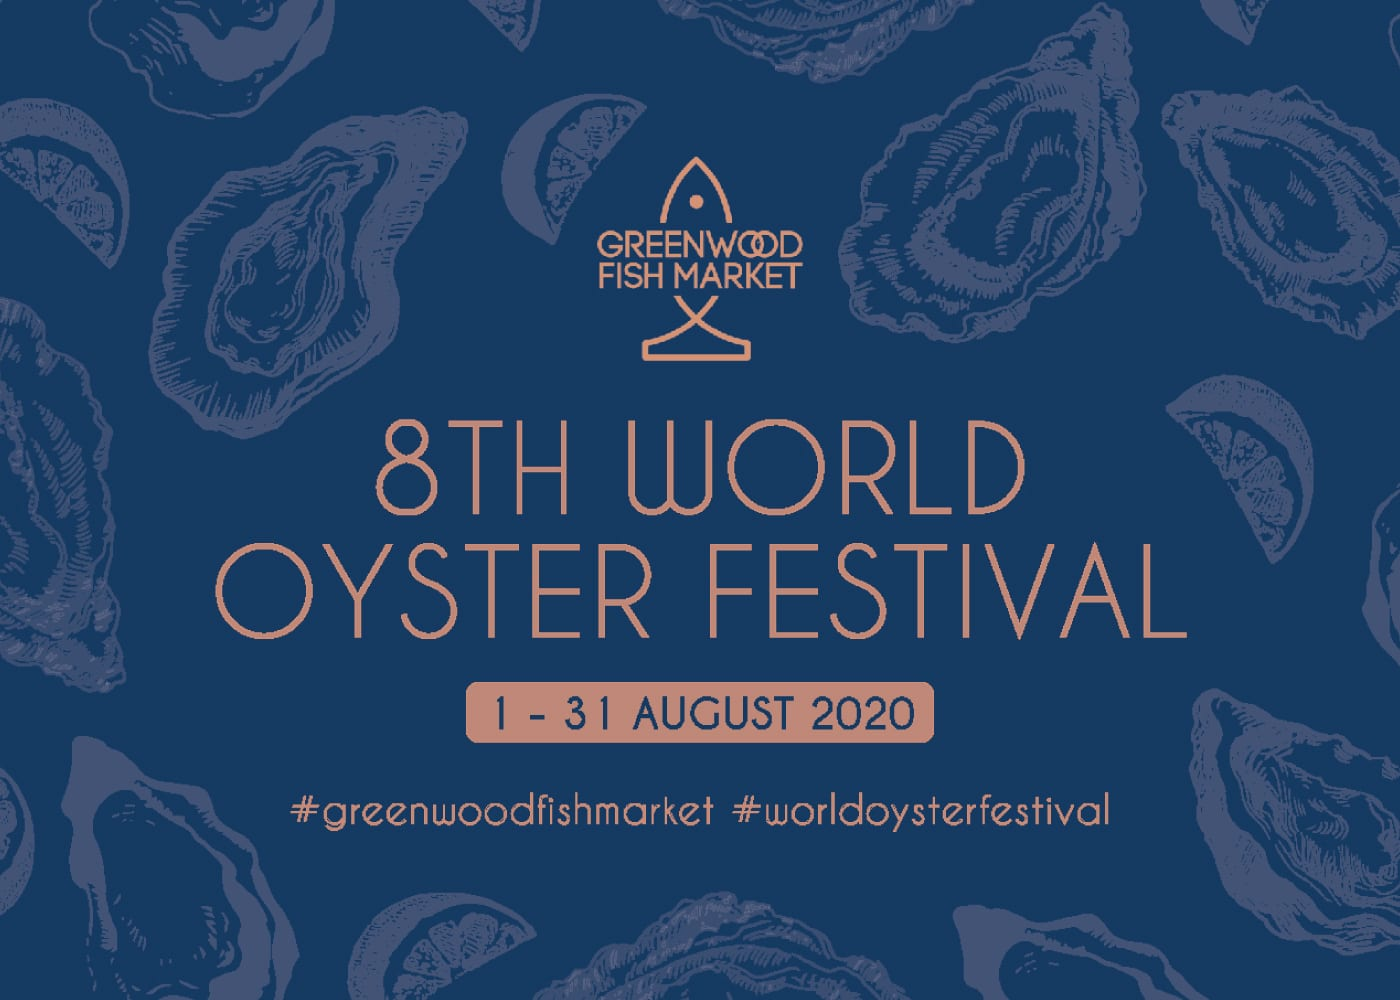 8th World Oyster Festival